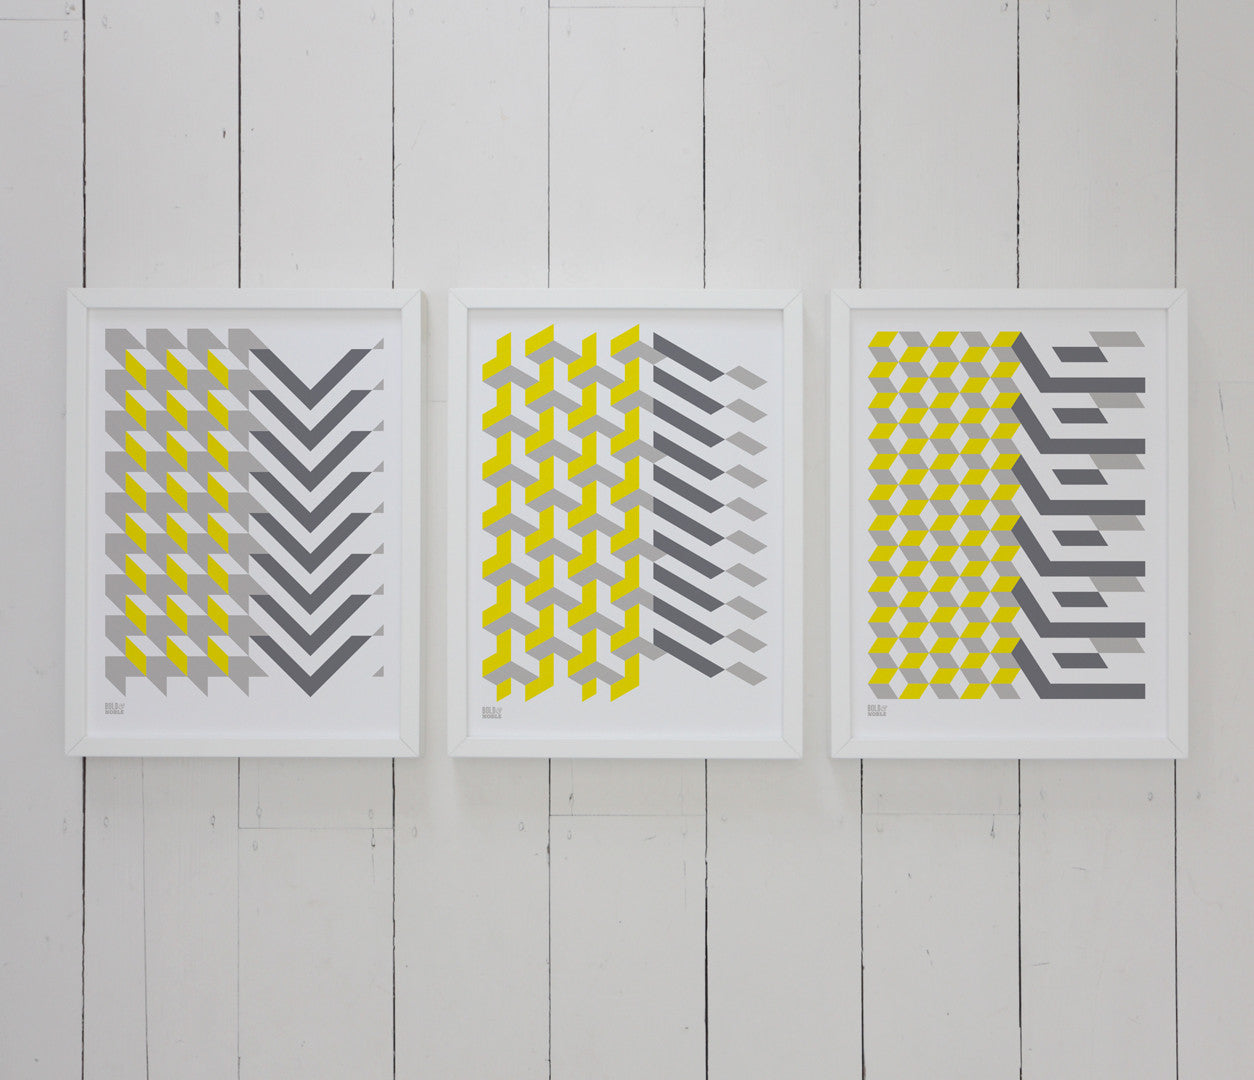 Wall Art ideas: Economical Screen Prints, Geometric Shapes Prints in grey and yellow